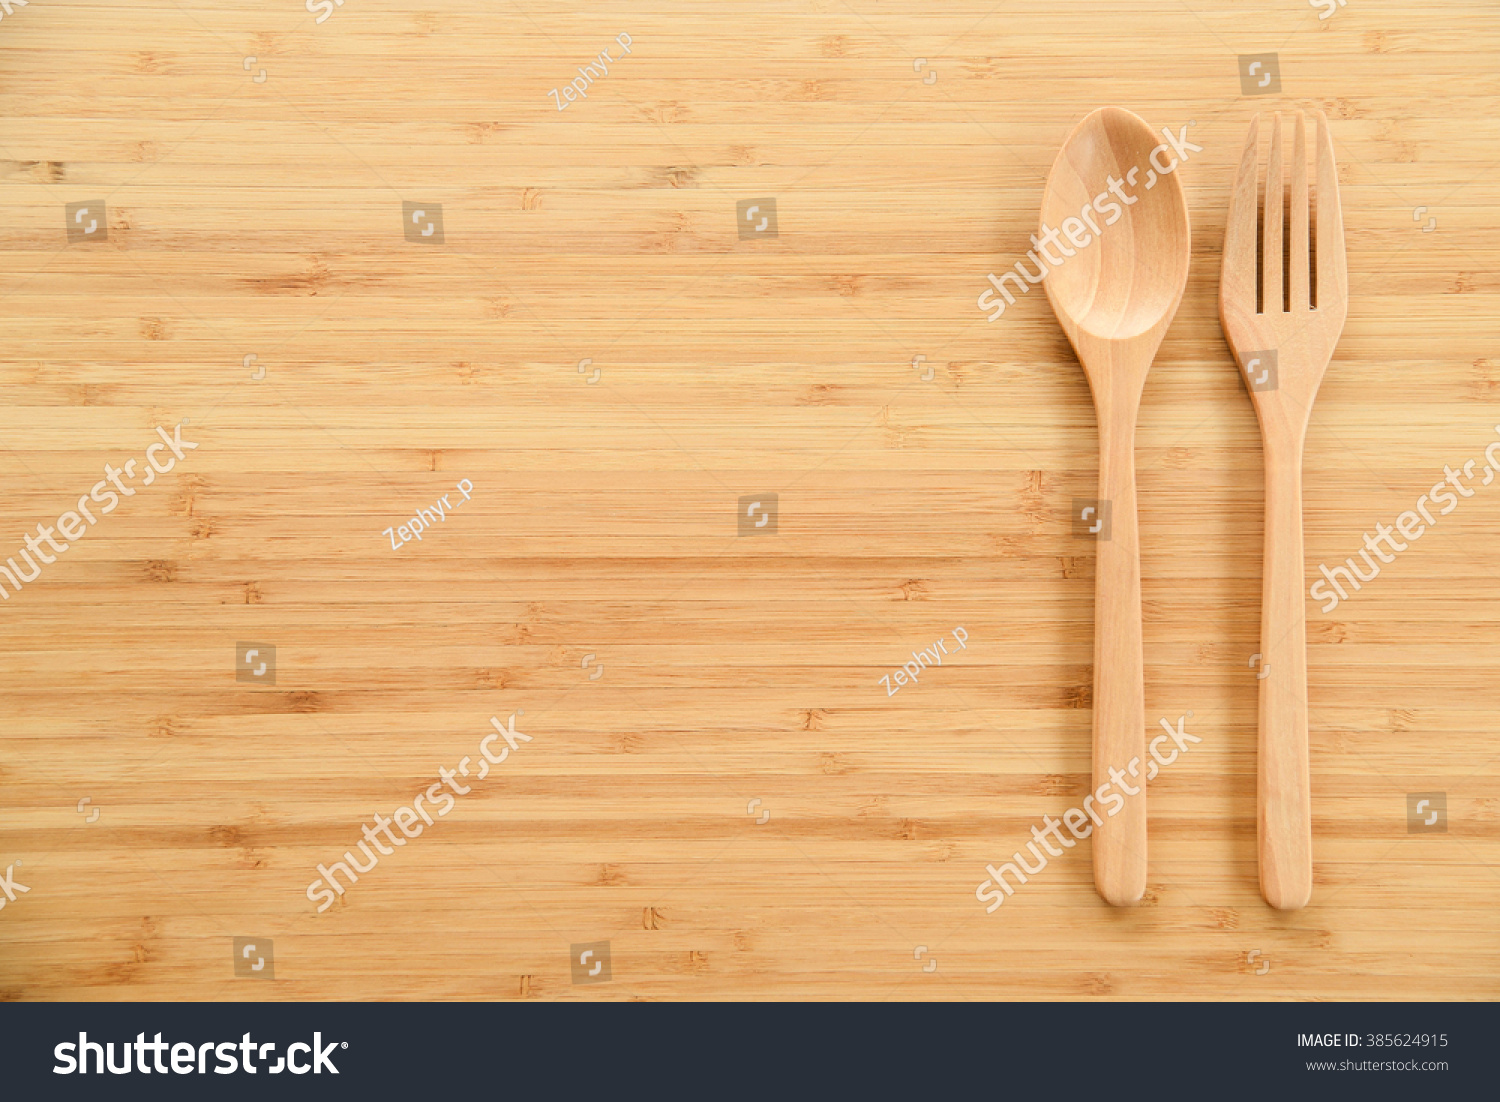 Dinner Table Background wooden spoon fork on wood texture stock photo 385624915 - shutterstock